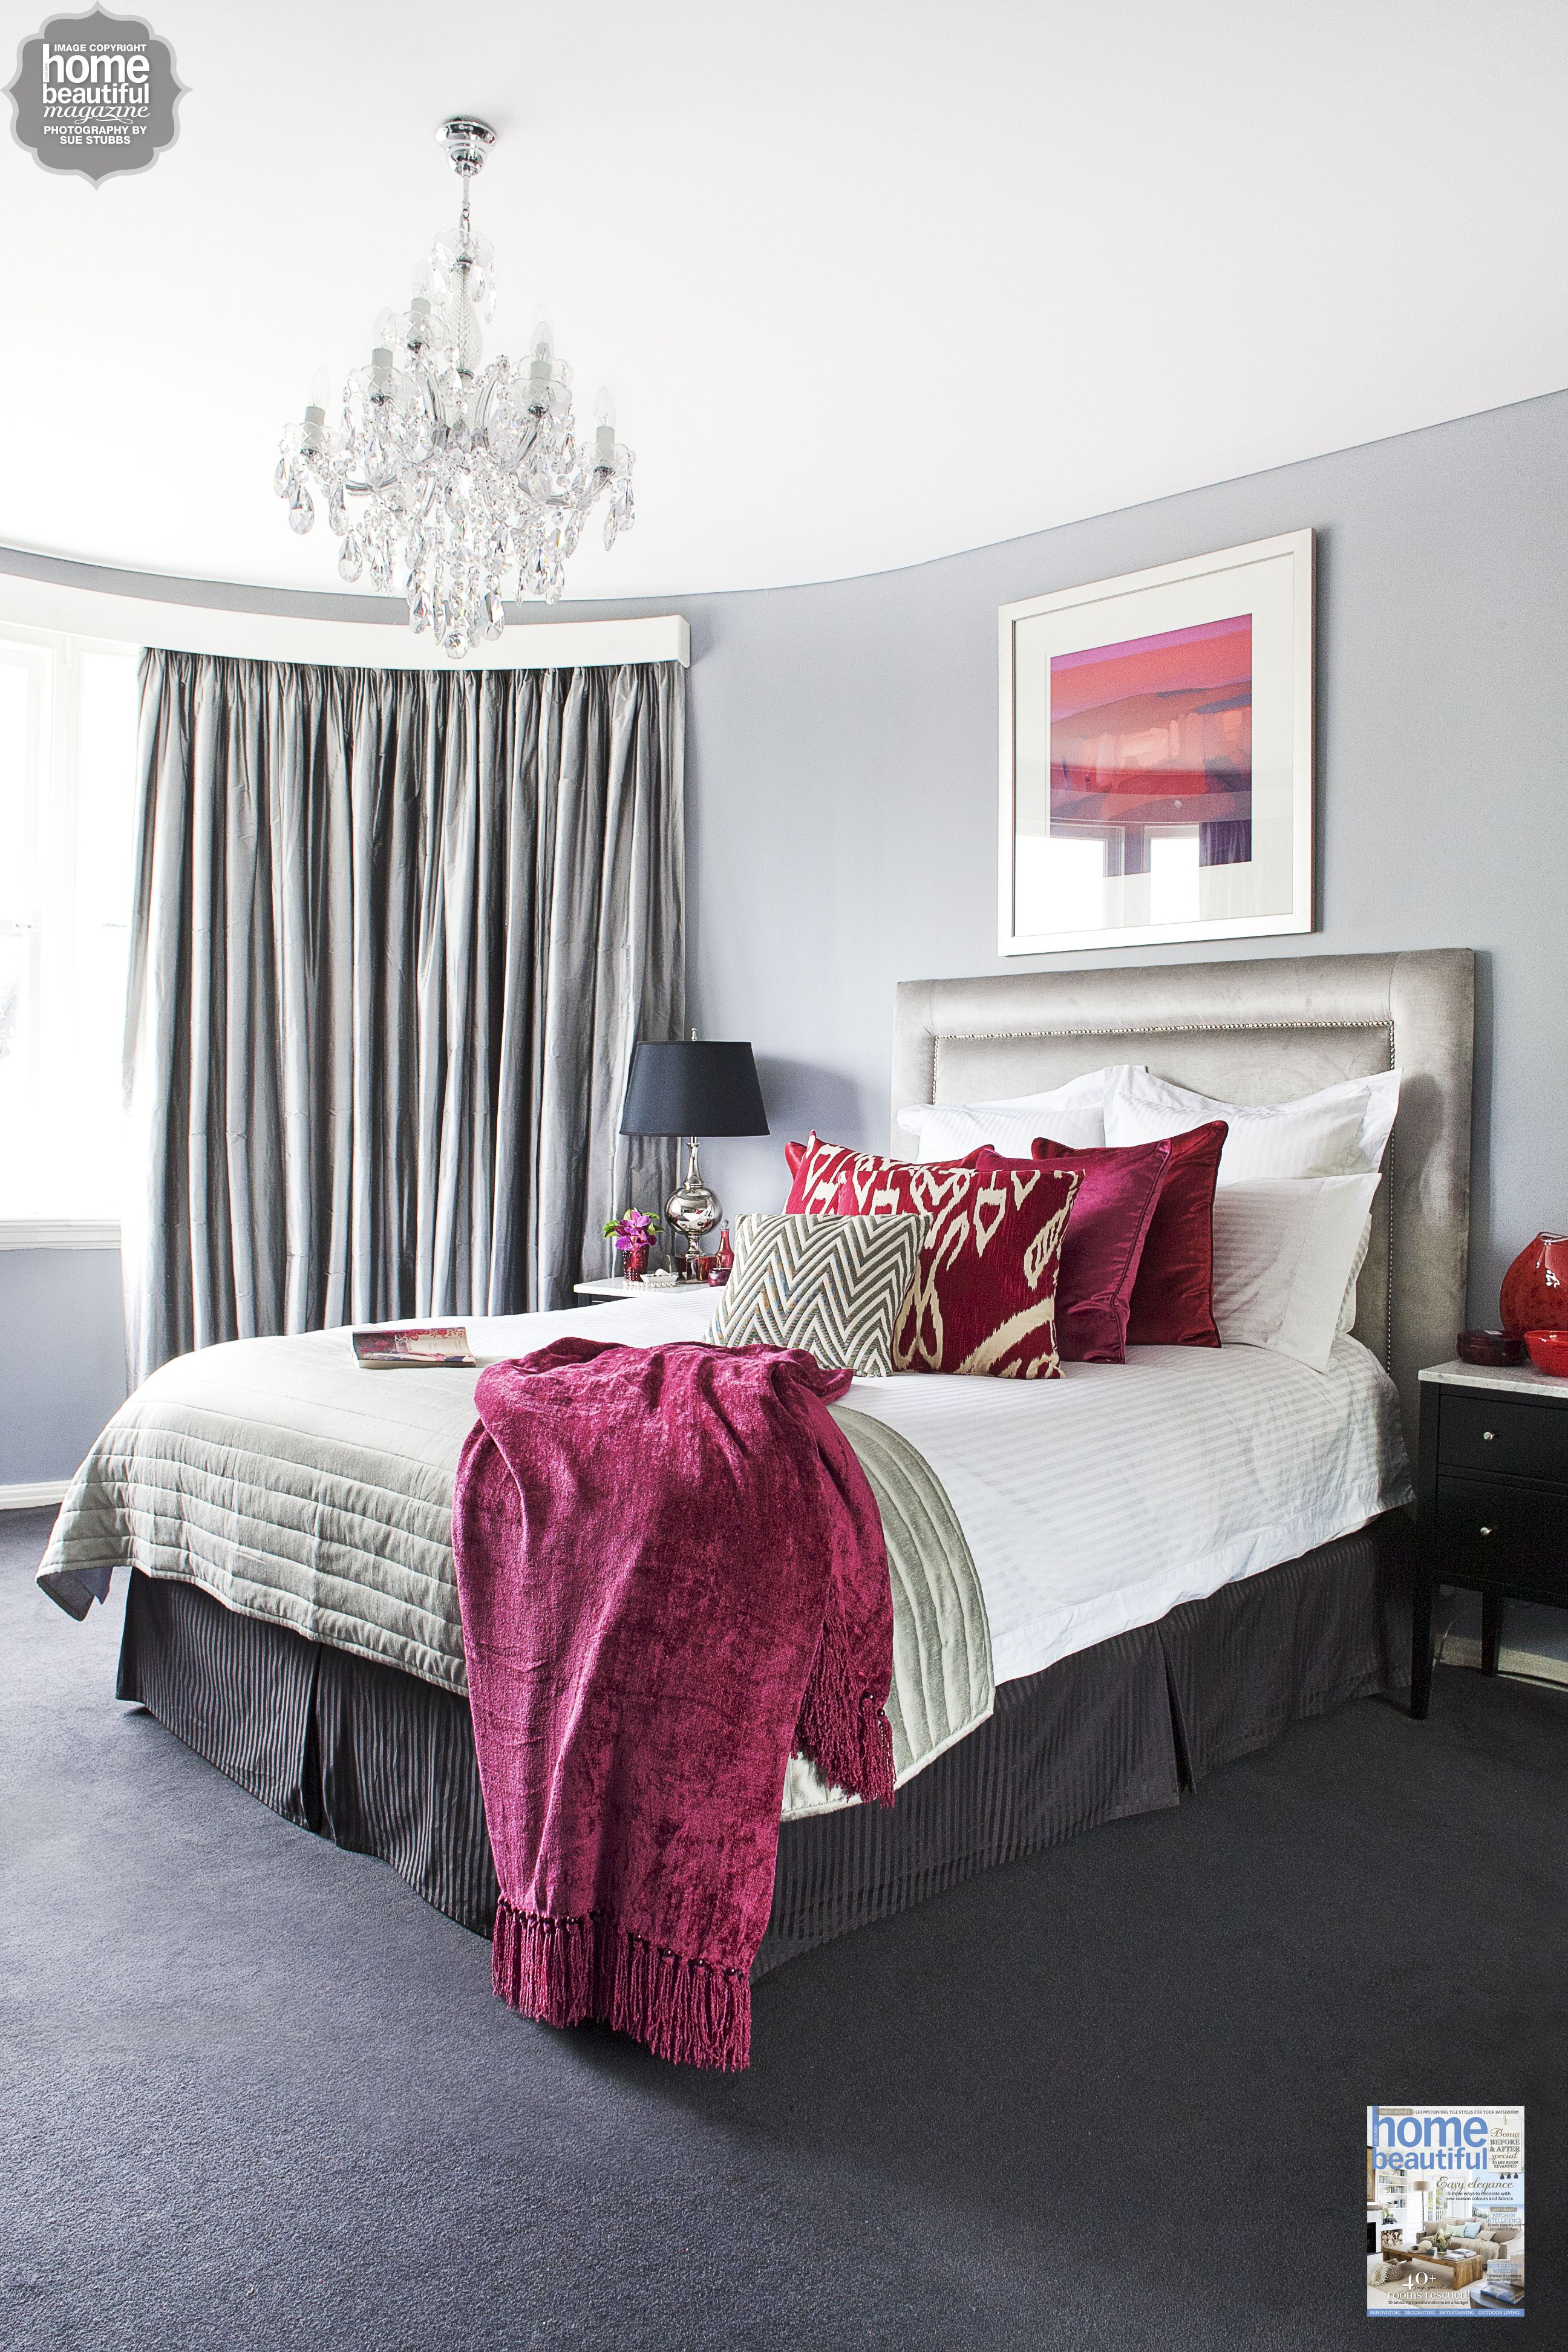 Rich Burgundy Touches Add Glamour To This Sydney Bedroom